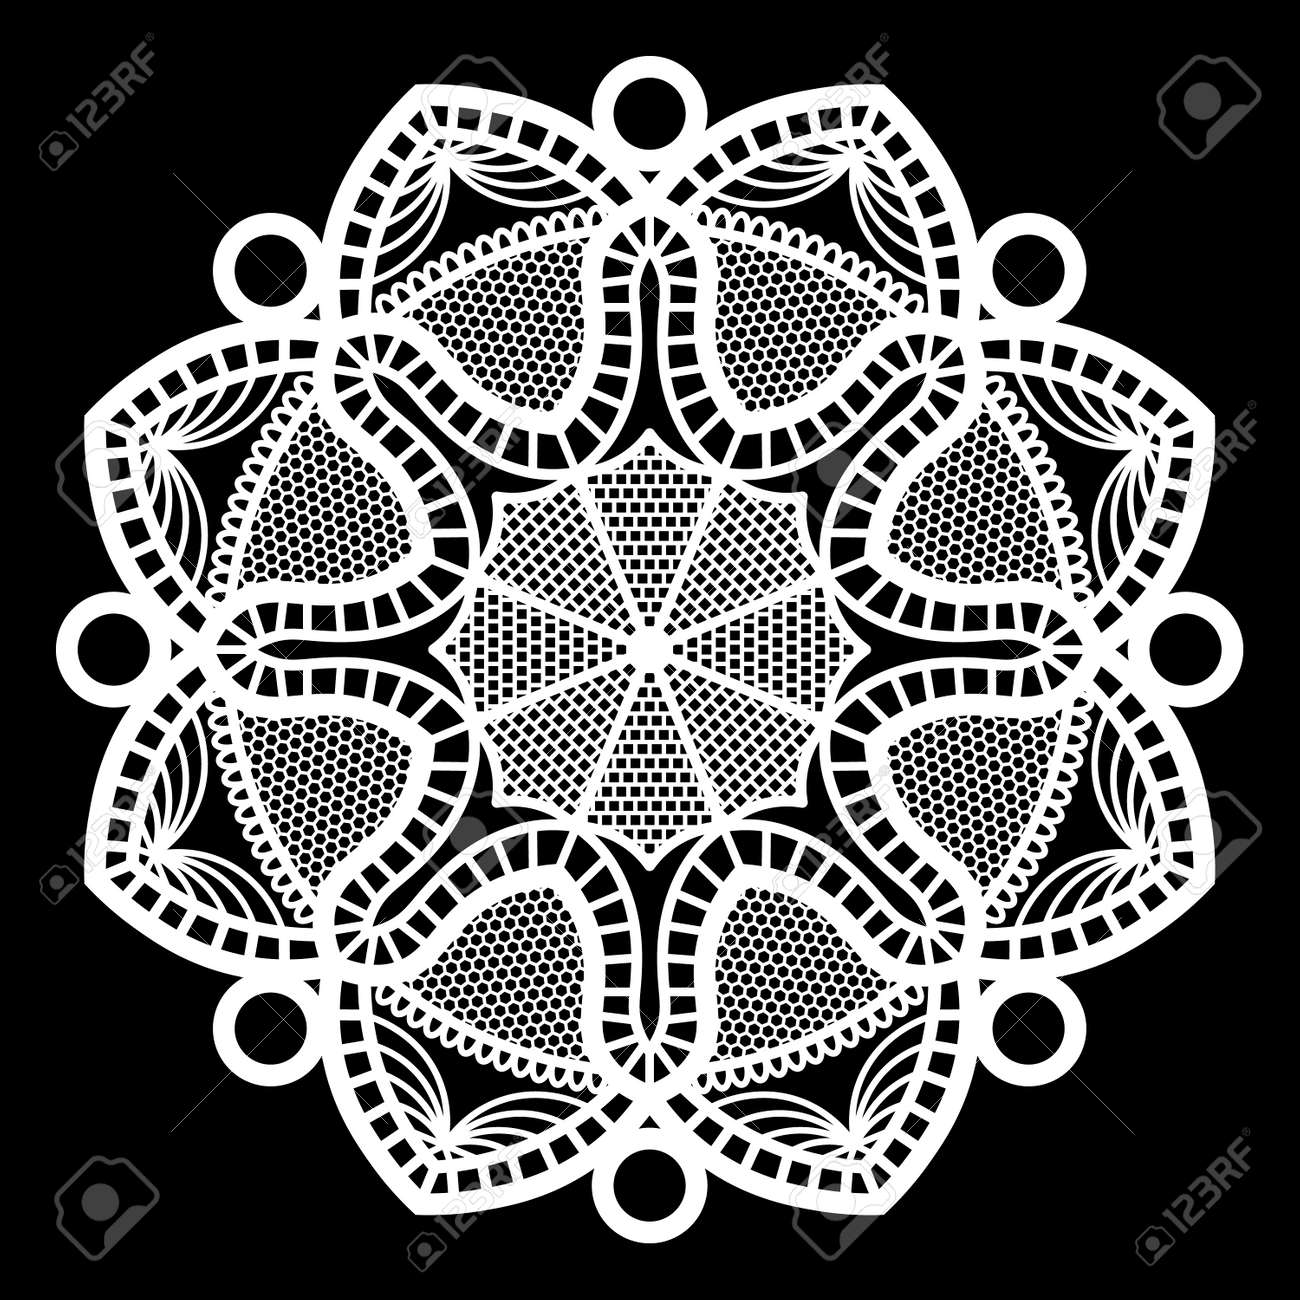 Lace round paper doily doily to decorate the cake doily under the plates  sc 1 st  123RF.com & Lace Round Paper Doily Doily To Decorate The Cake Doily Under ...